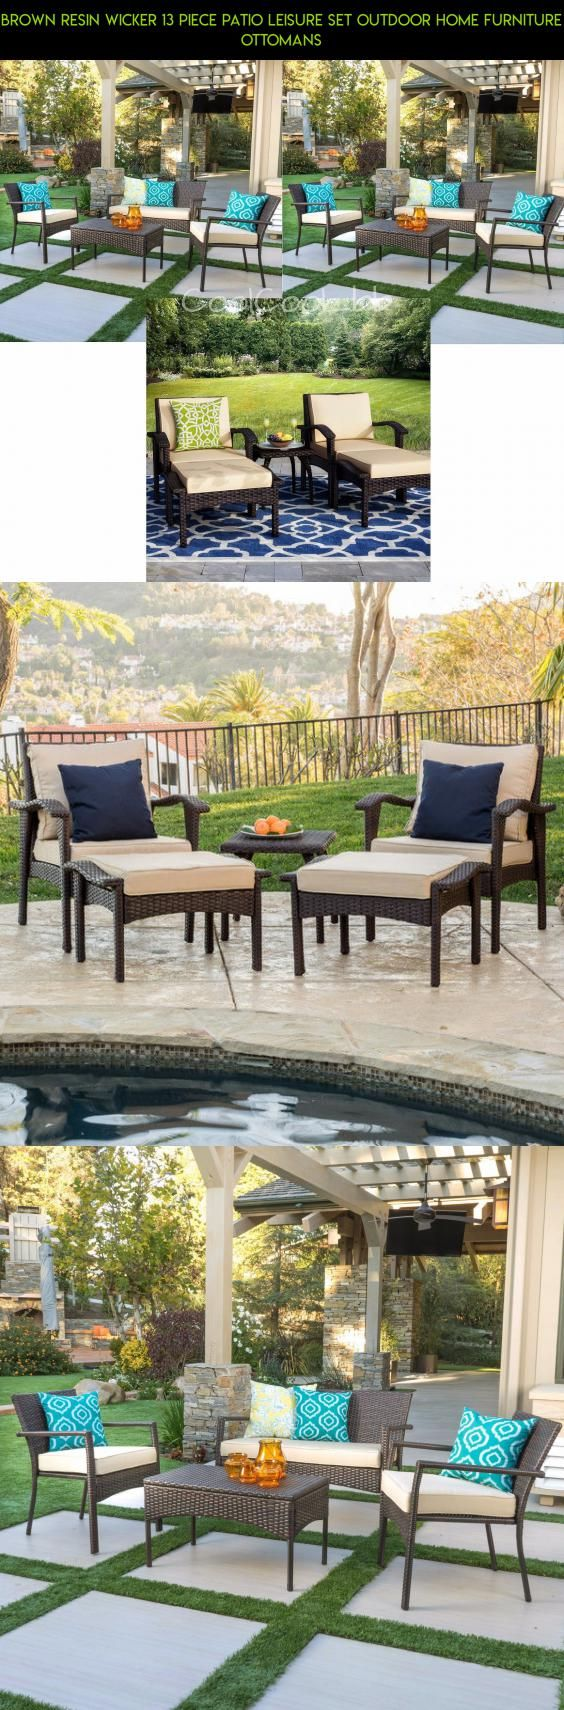 Oakland living elite resin wicker coffee table in coffee walmart com - Brown Resin Wicker 13 Piece Patio Leisure Set Outdoor Home Furniture Ottomans Drone Fpv